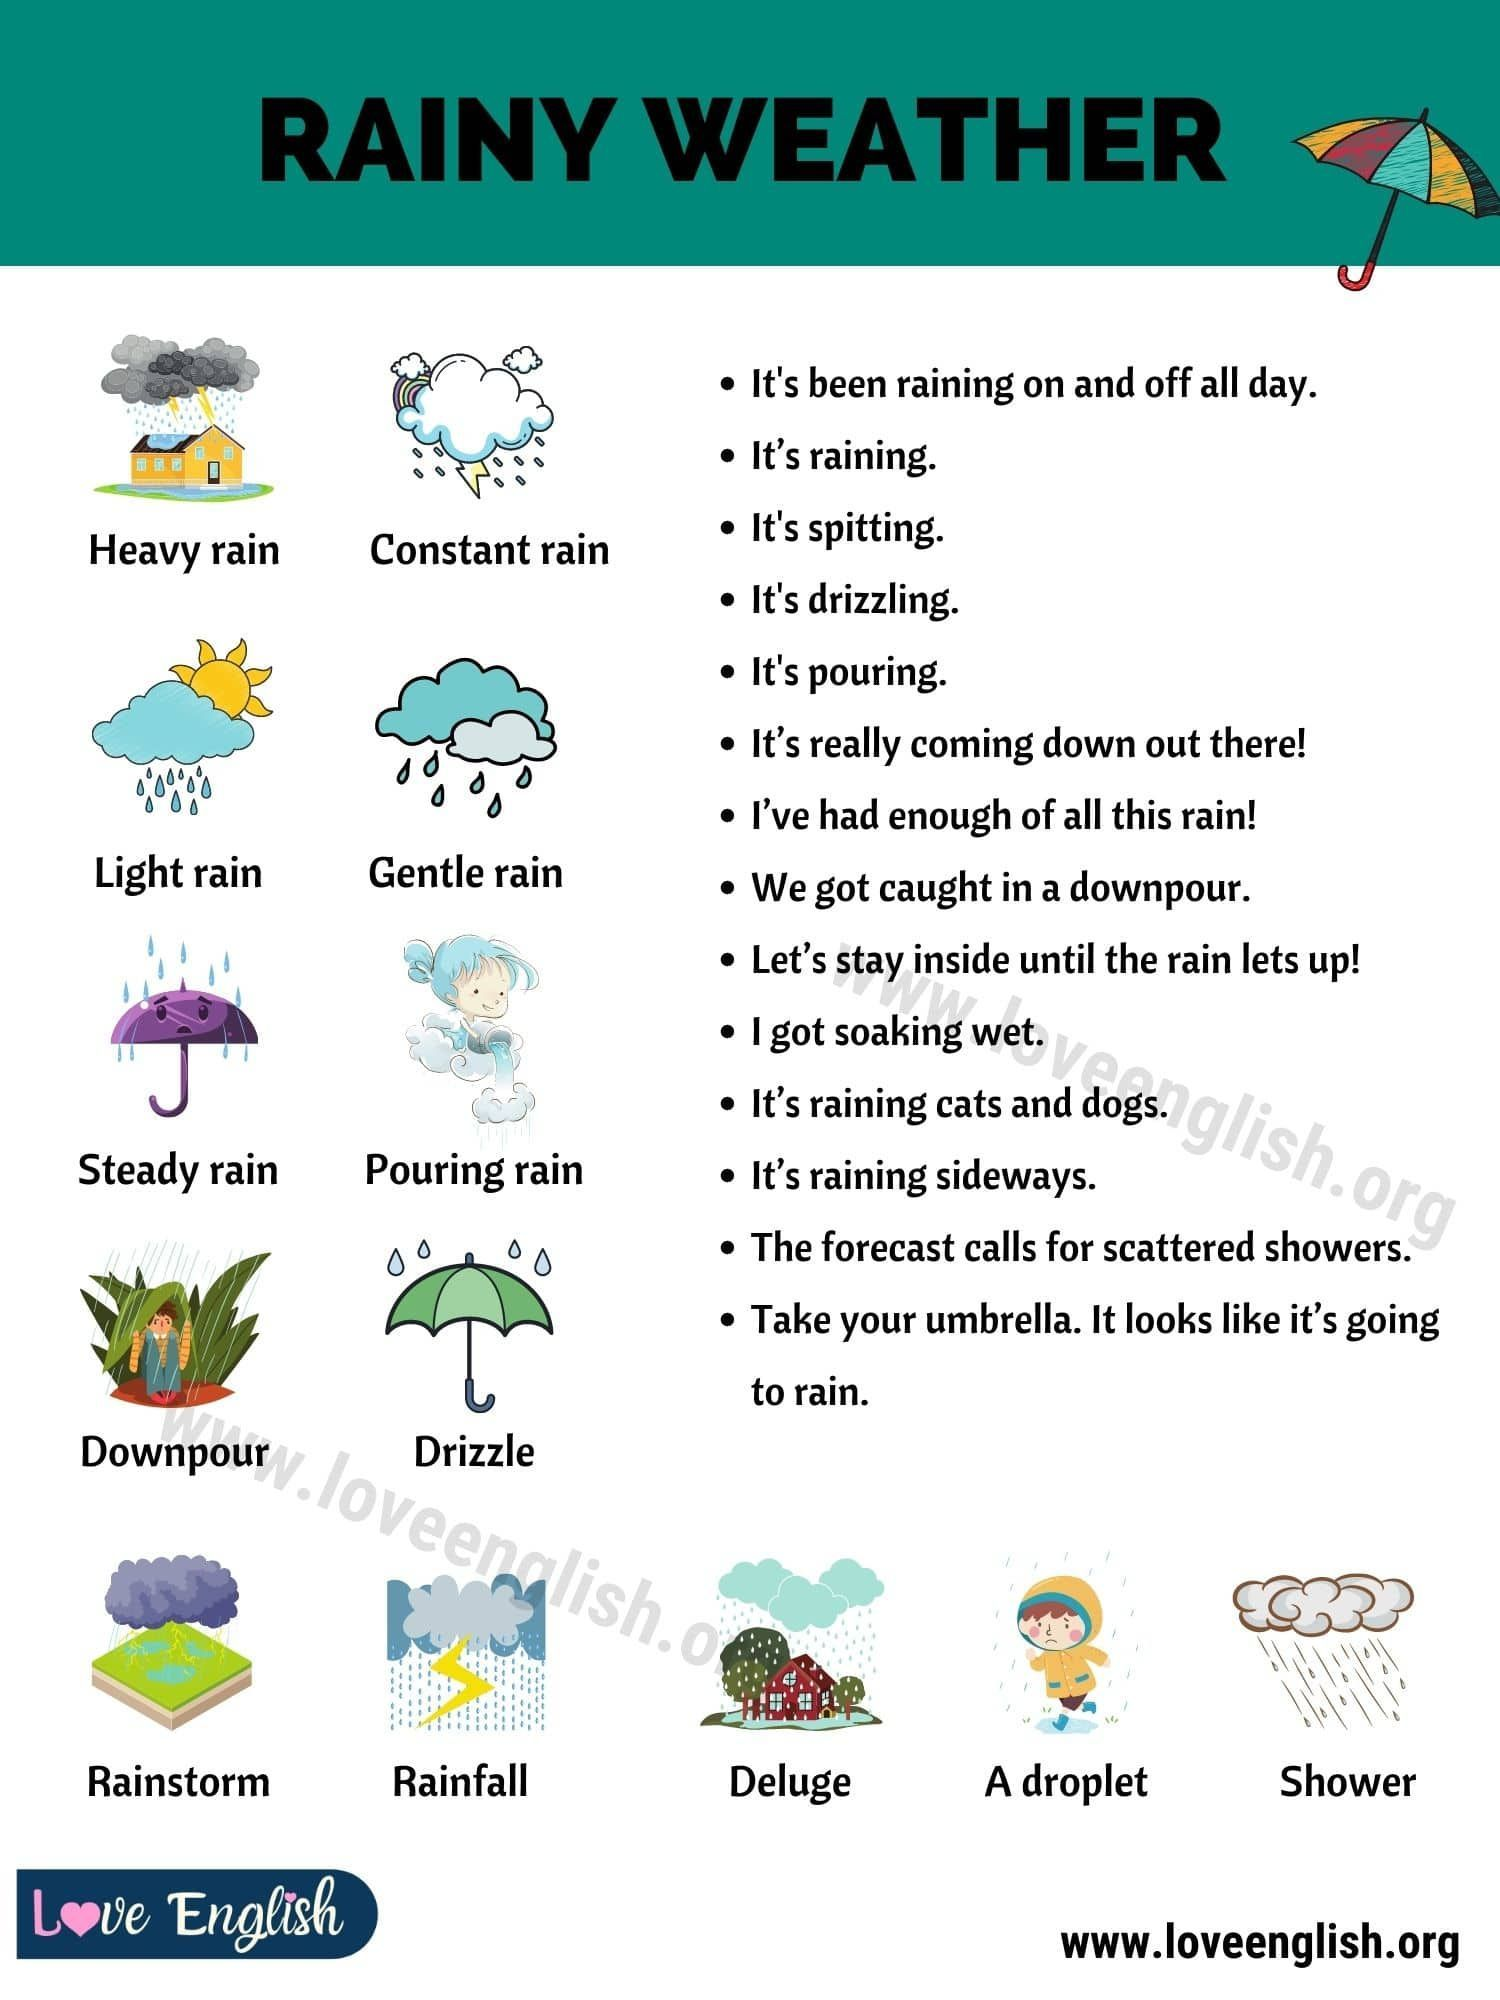 Rainy Weather Useful Words And Phrases To Describe Rainy